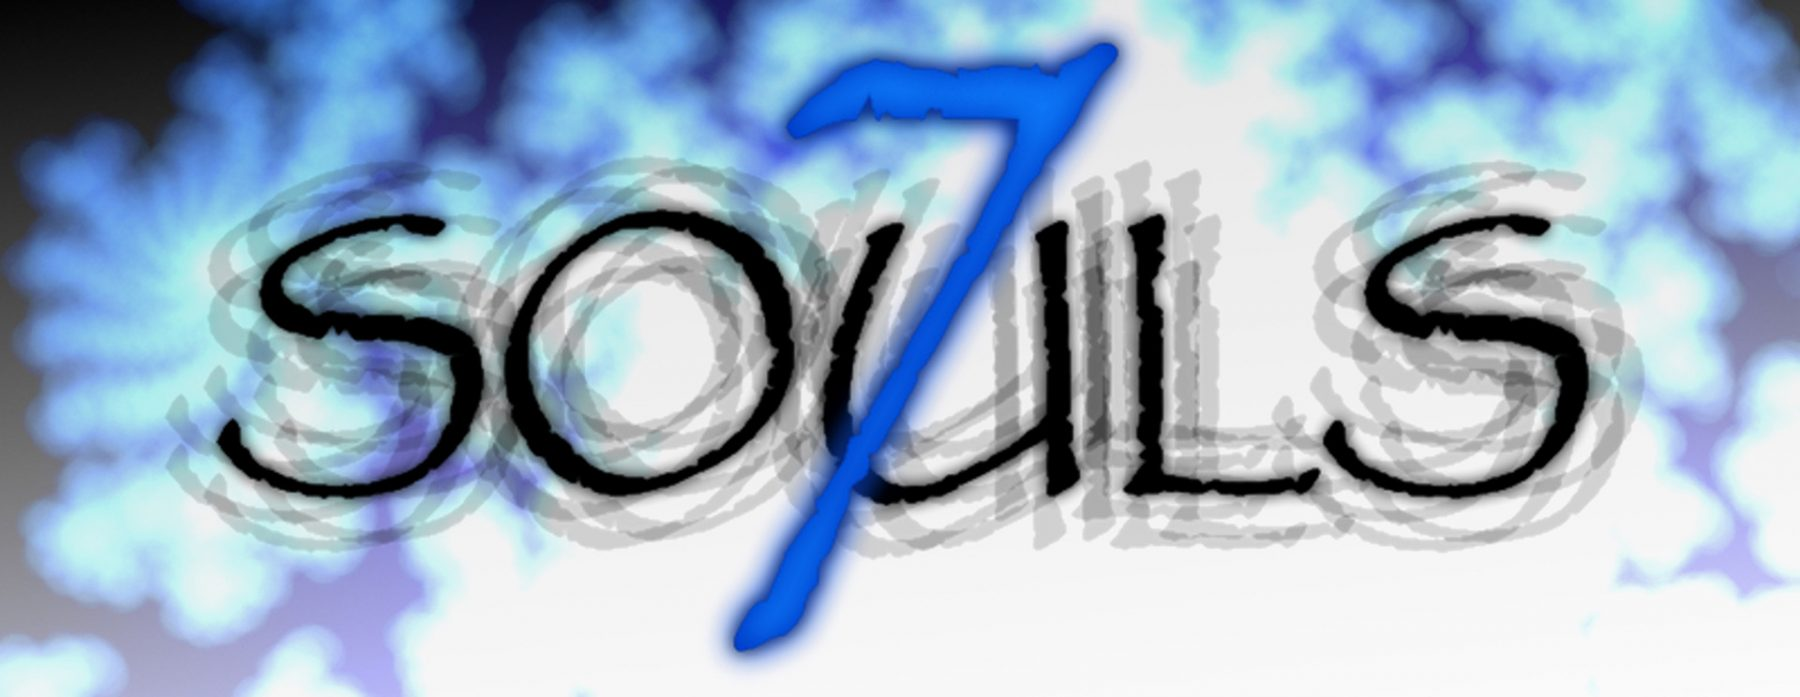 cropped-banner_small-4.jpg